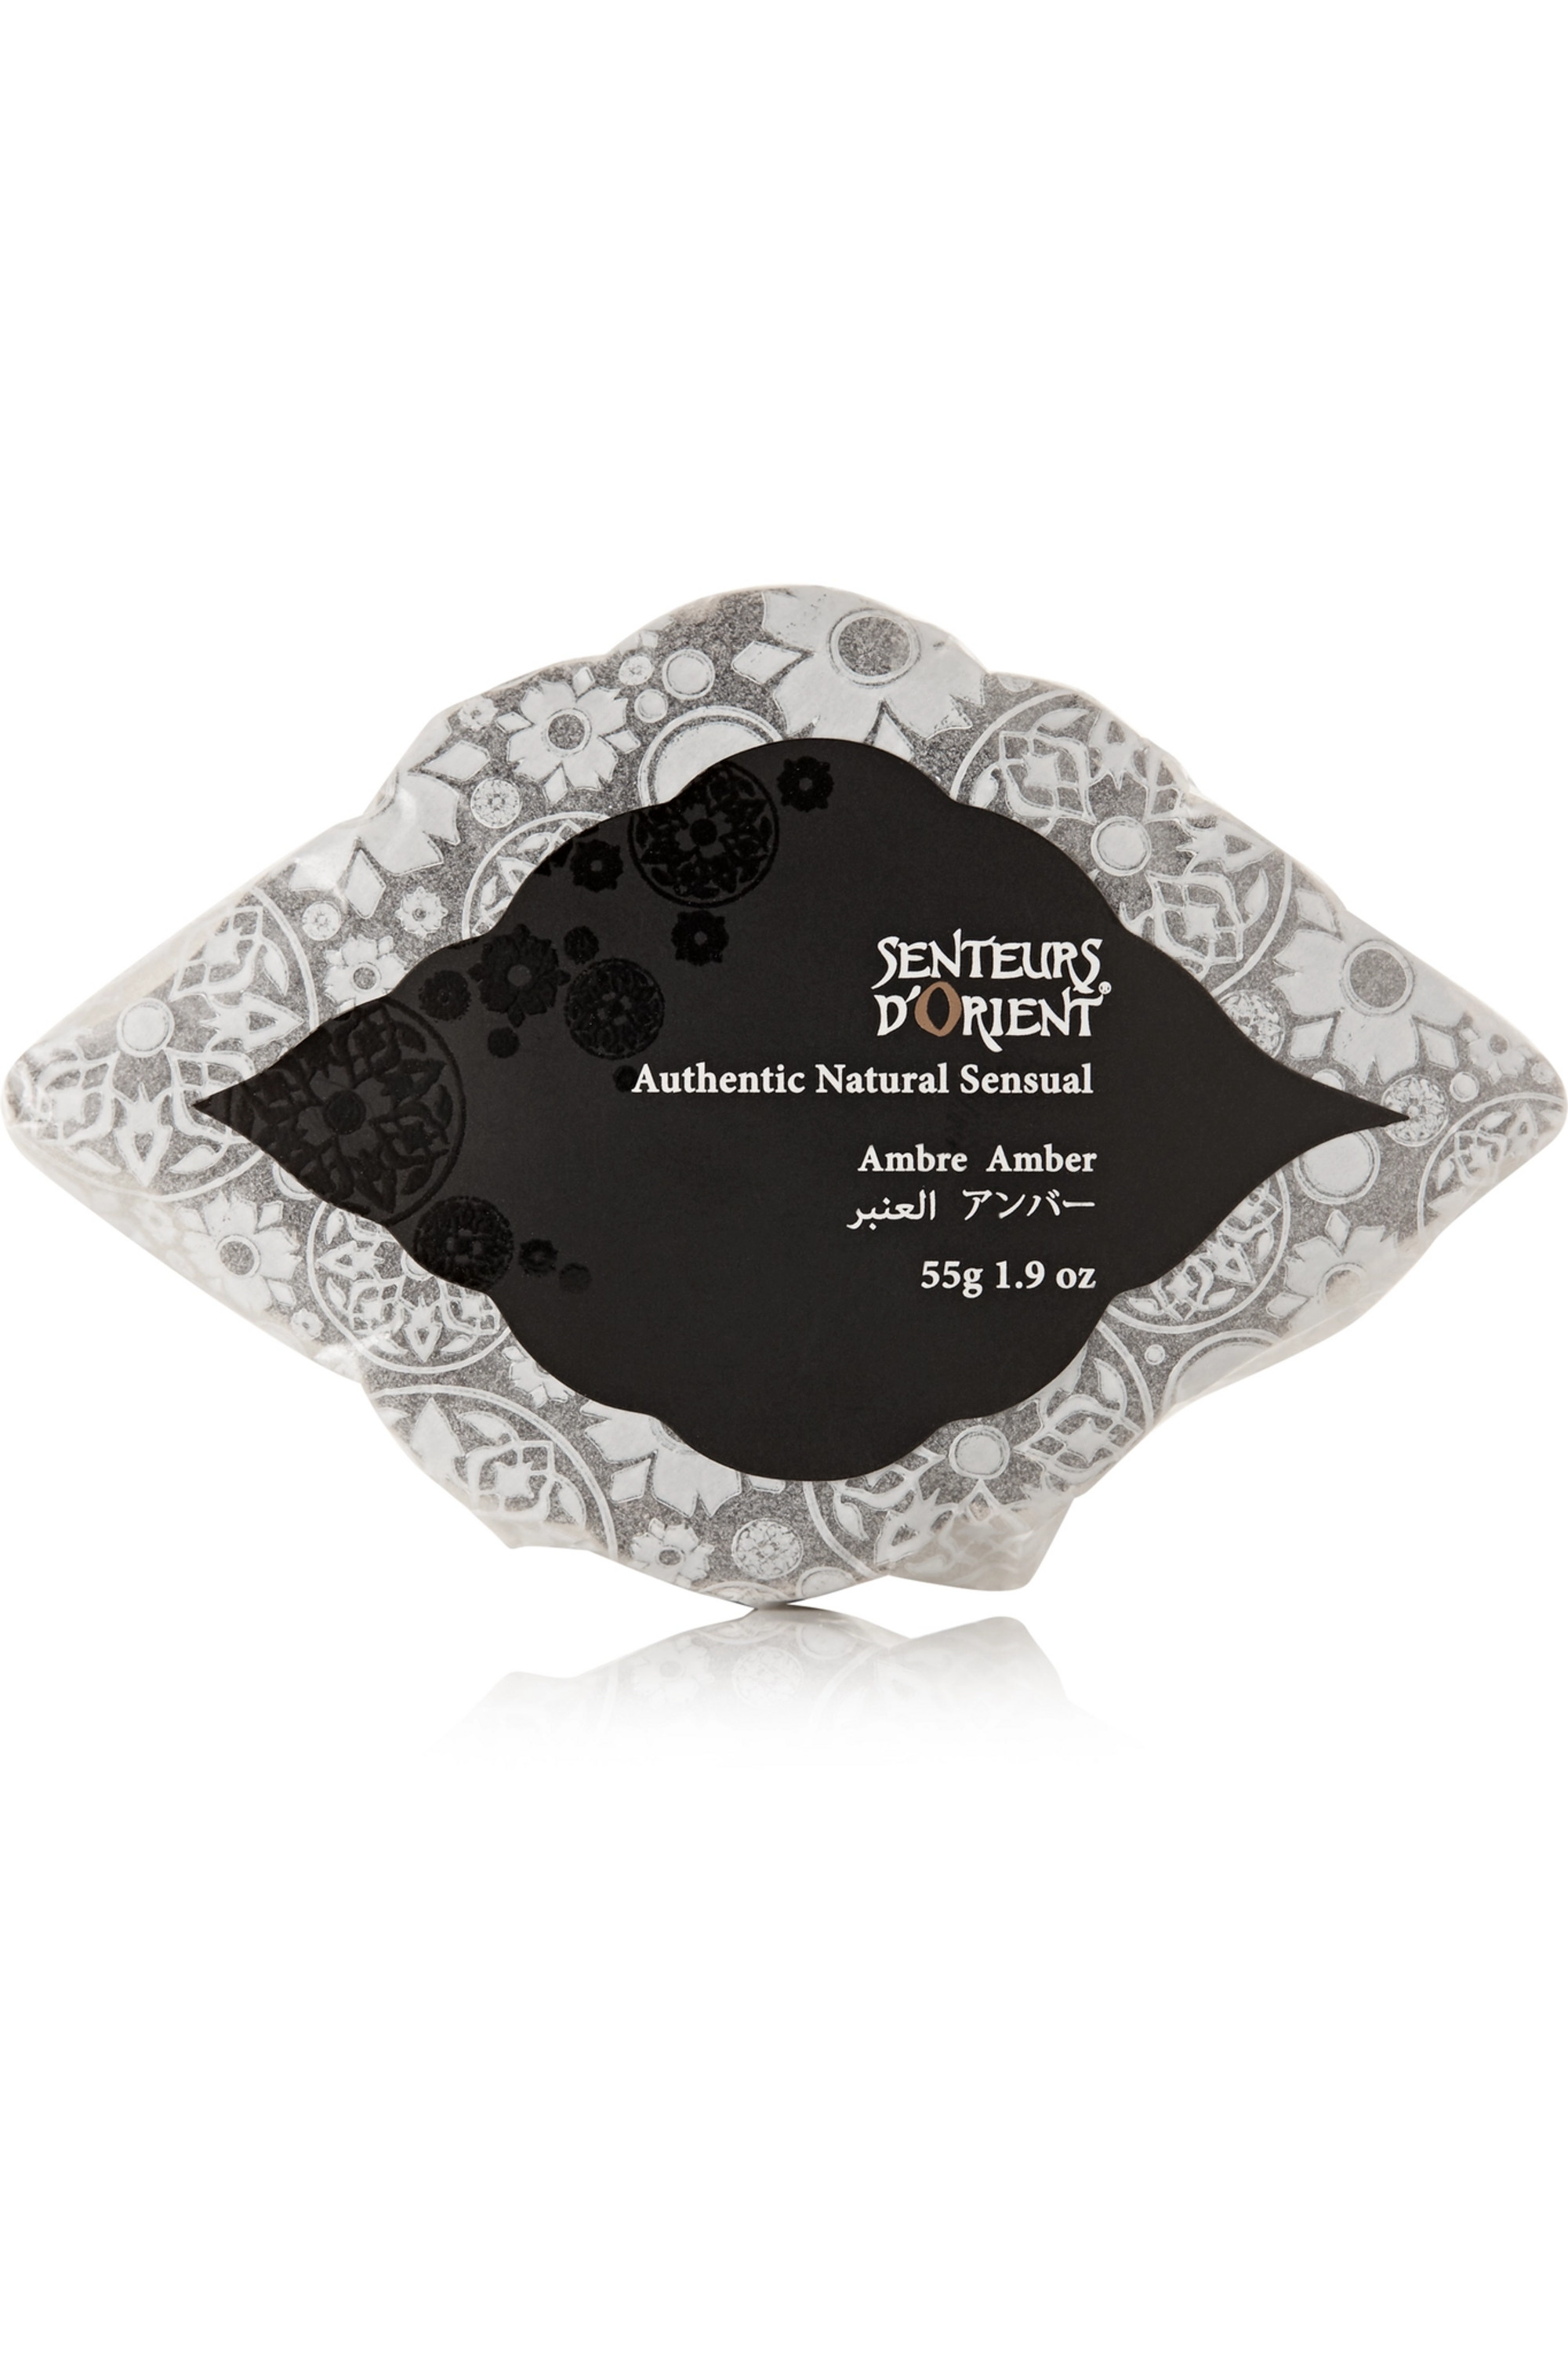 Senteurs d'Orient + NET SUSTAIN Amber Ma'amoul Soap with Marble Dish, 285 g – Seife mit Schale